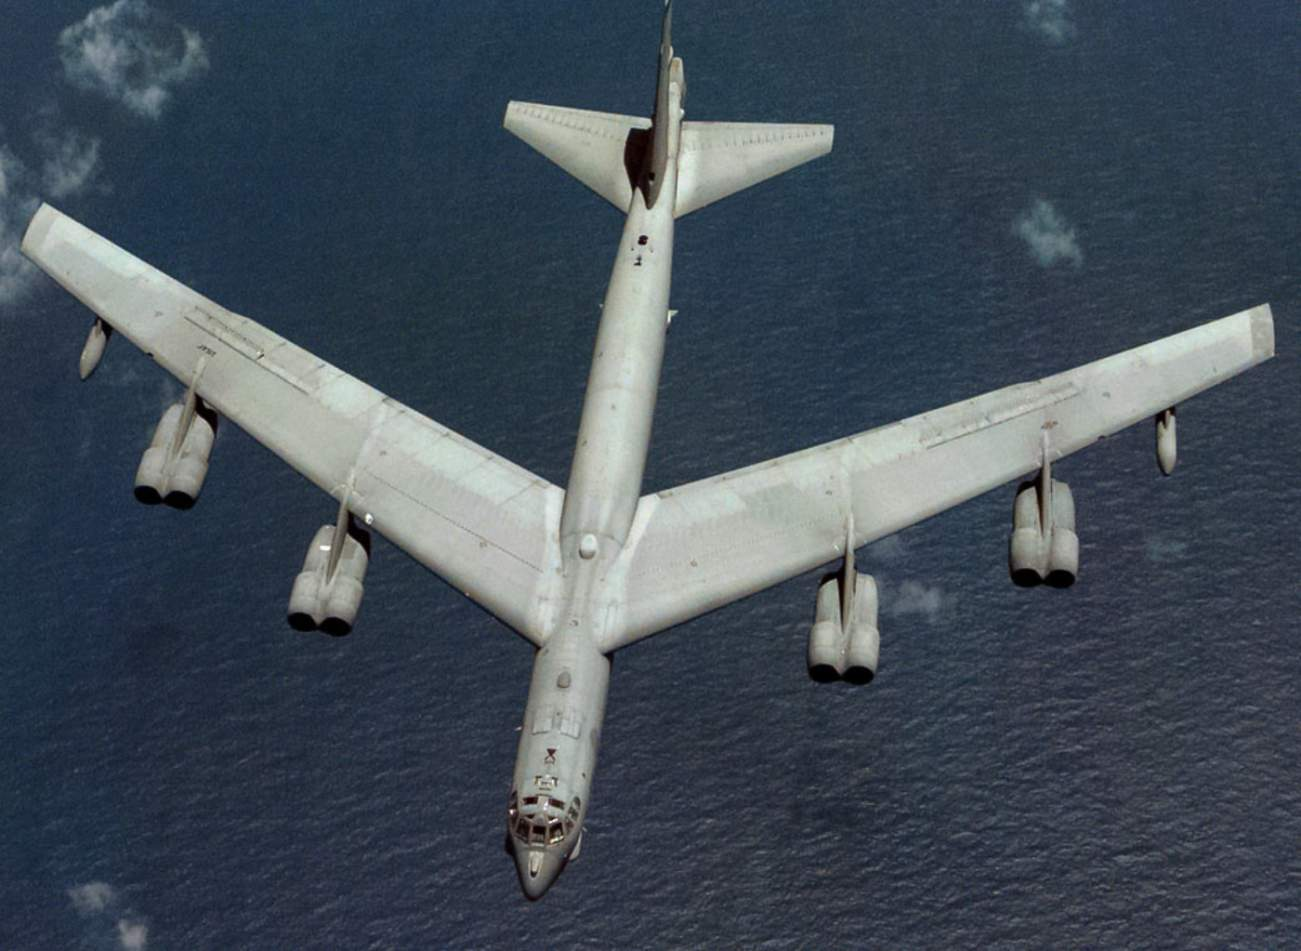 The Air Force's B-52 Bomber: Could it Serve 100 Years?